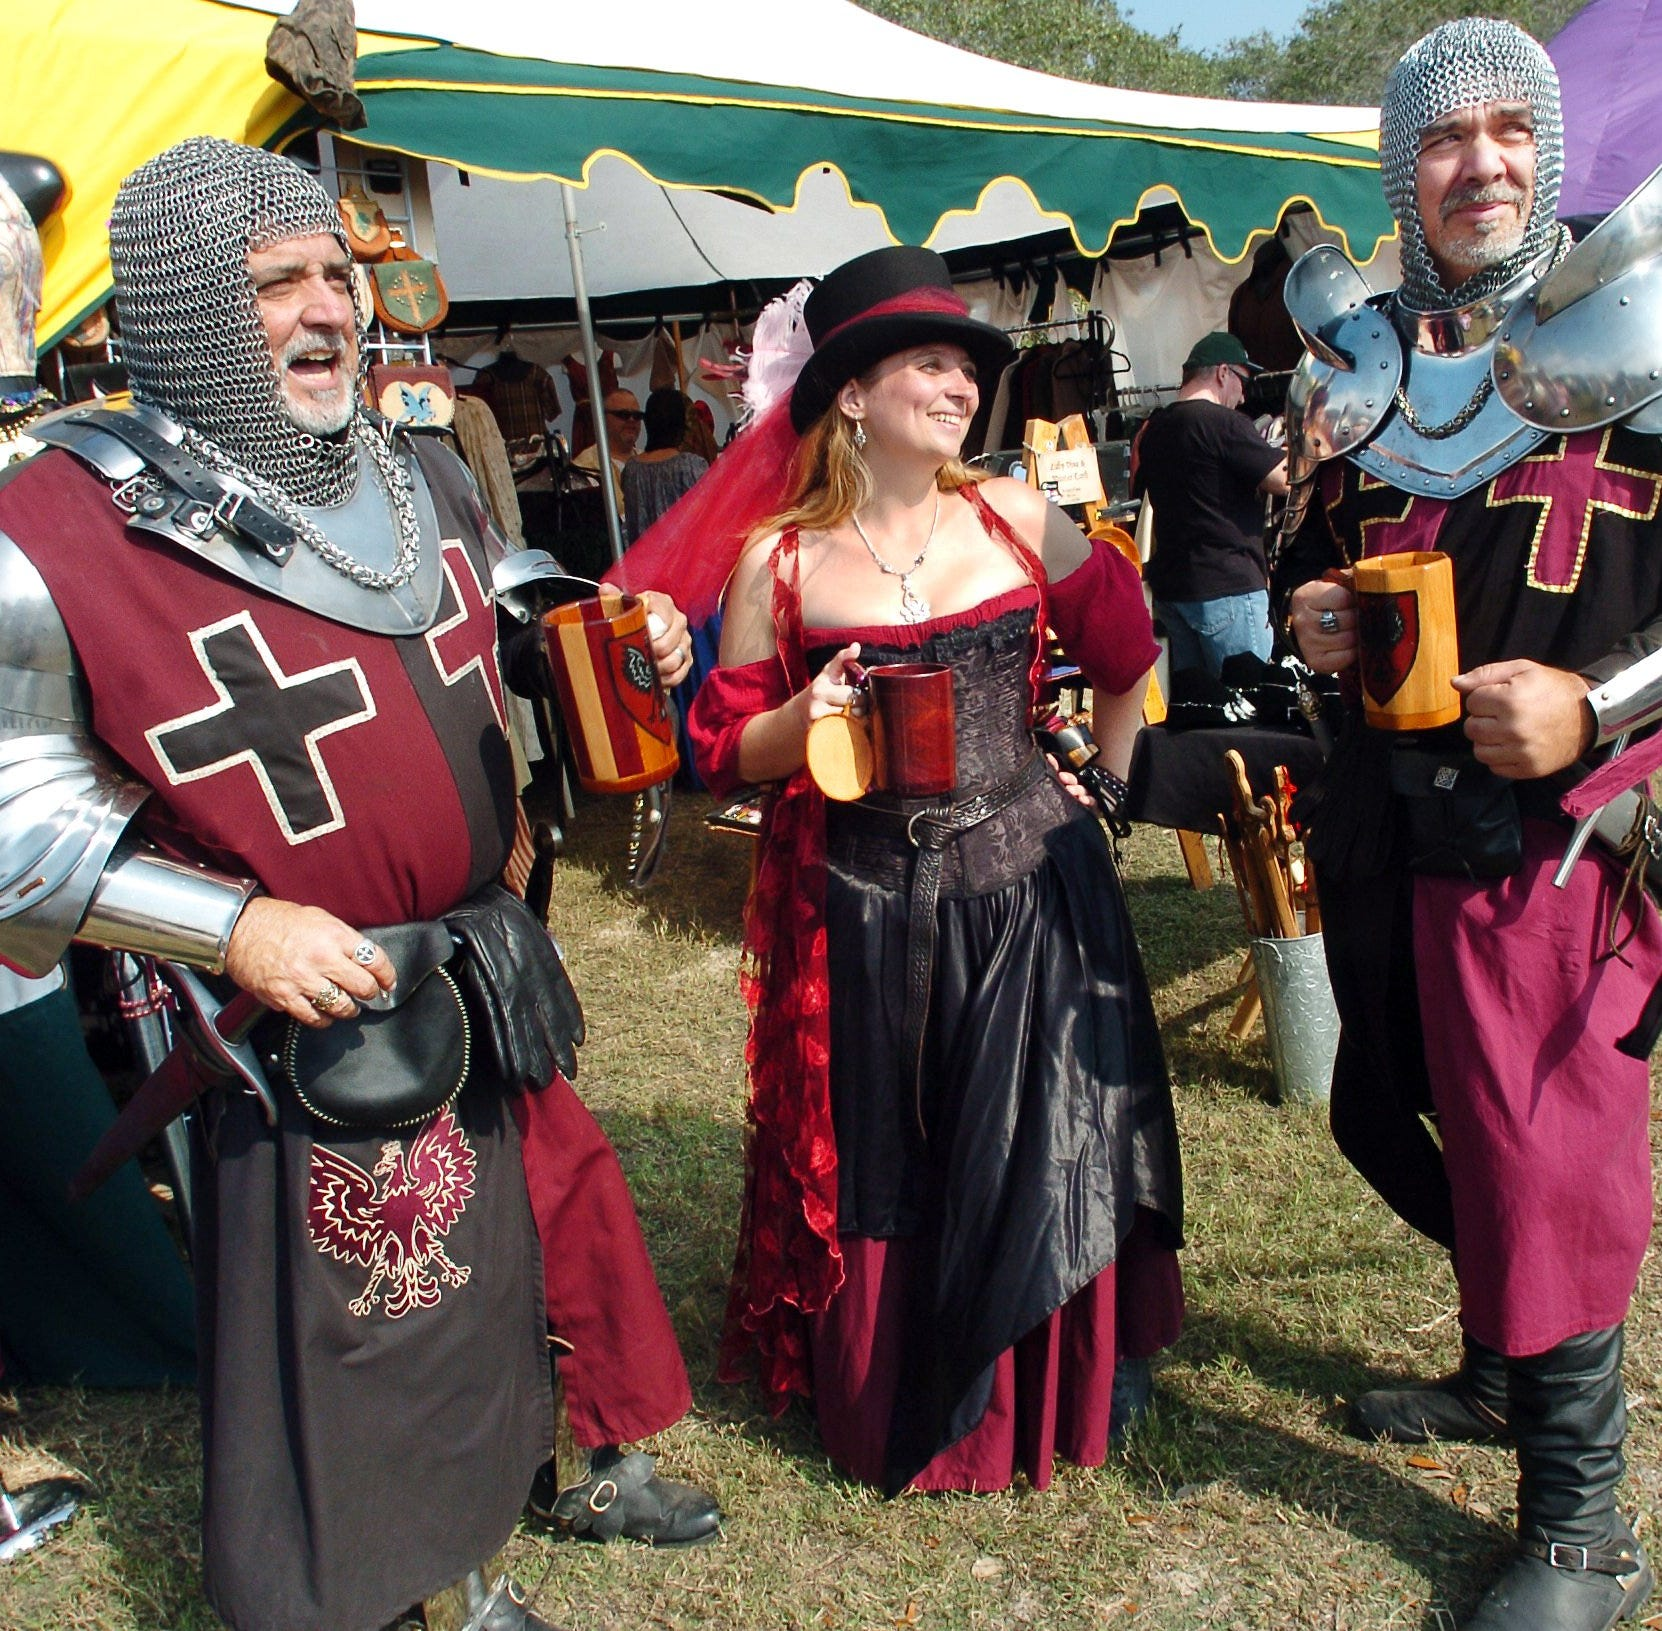 Experience life in the Middle Ages at the 20th annual Ingleside Renaissance Faire